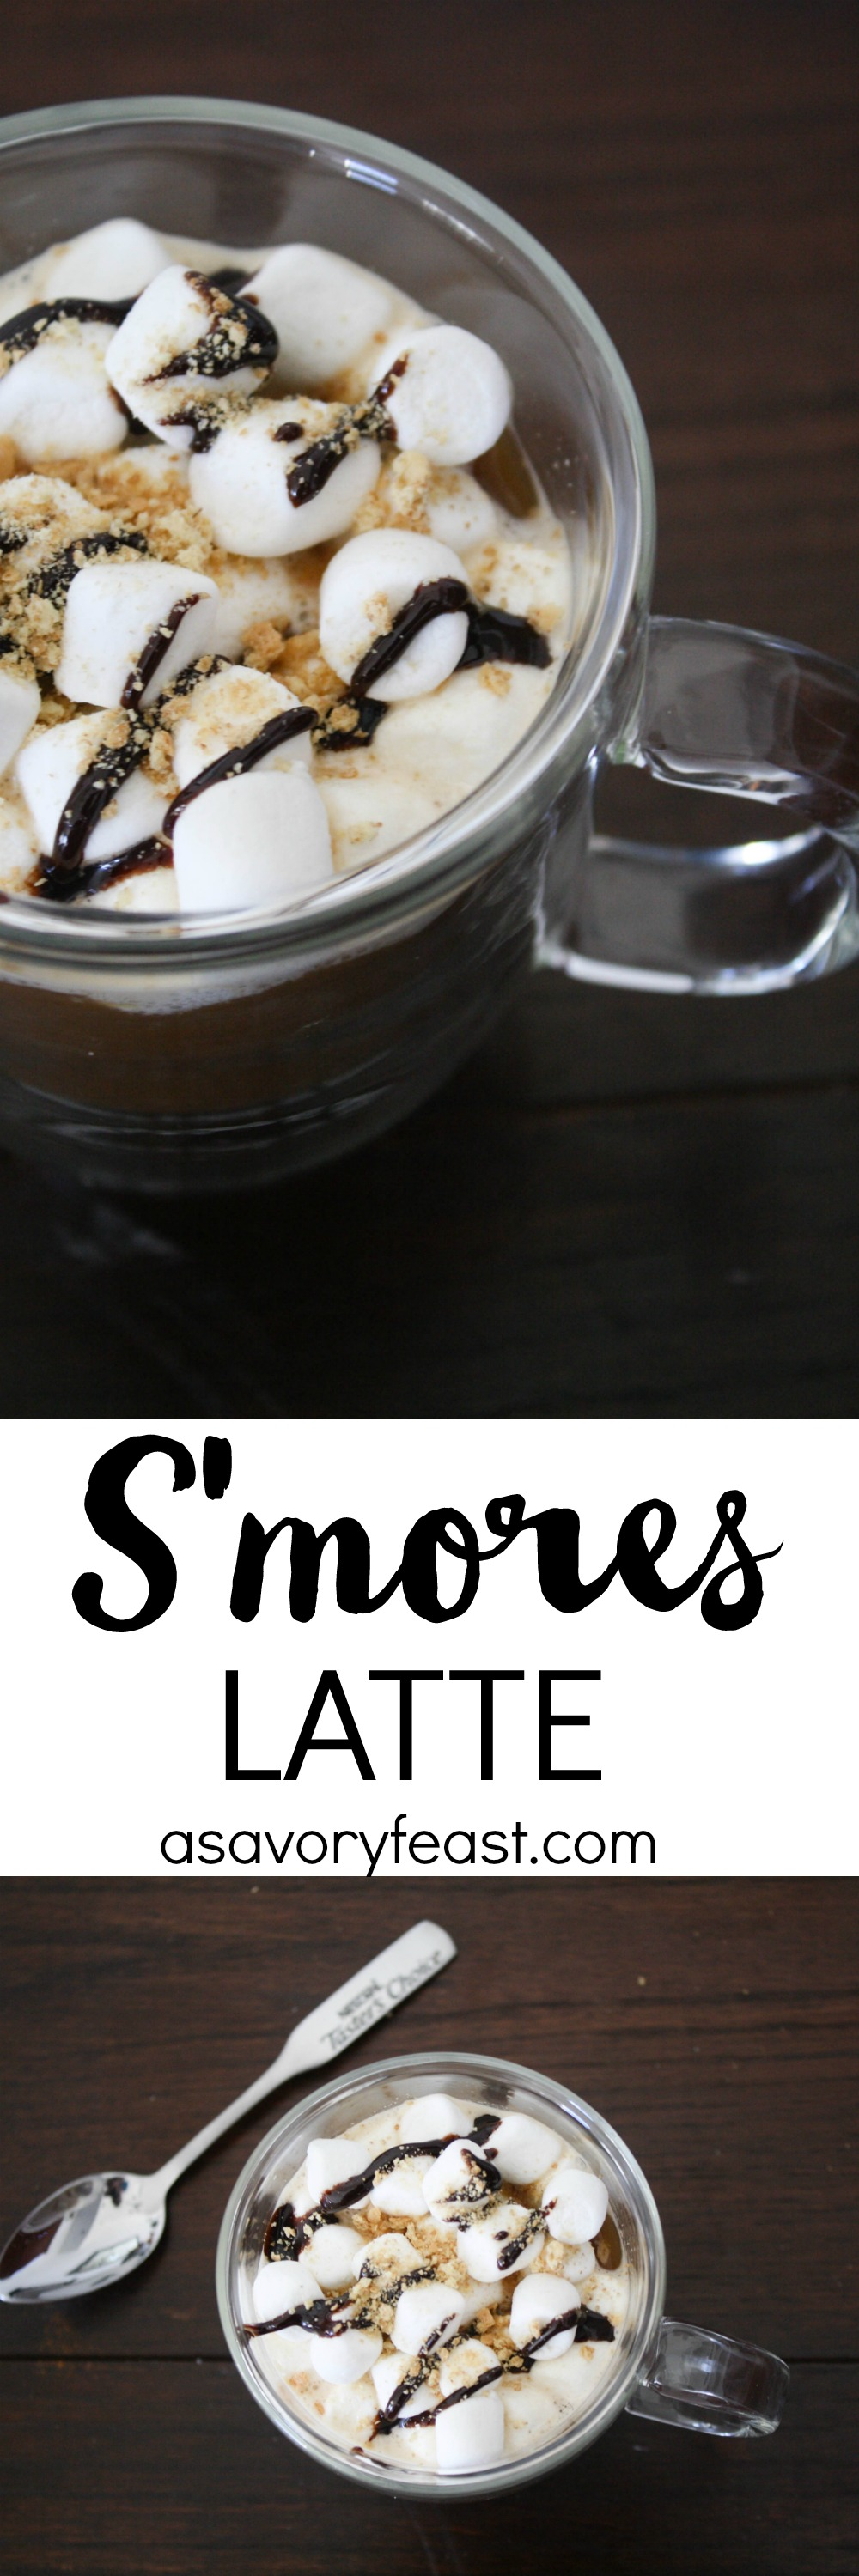 Make this beautiful yet simple S'mores Latte at home! Start with instant coffee and add in a few ingredients to make this coffee house drink at home. Ready in minutes!